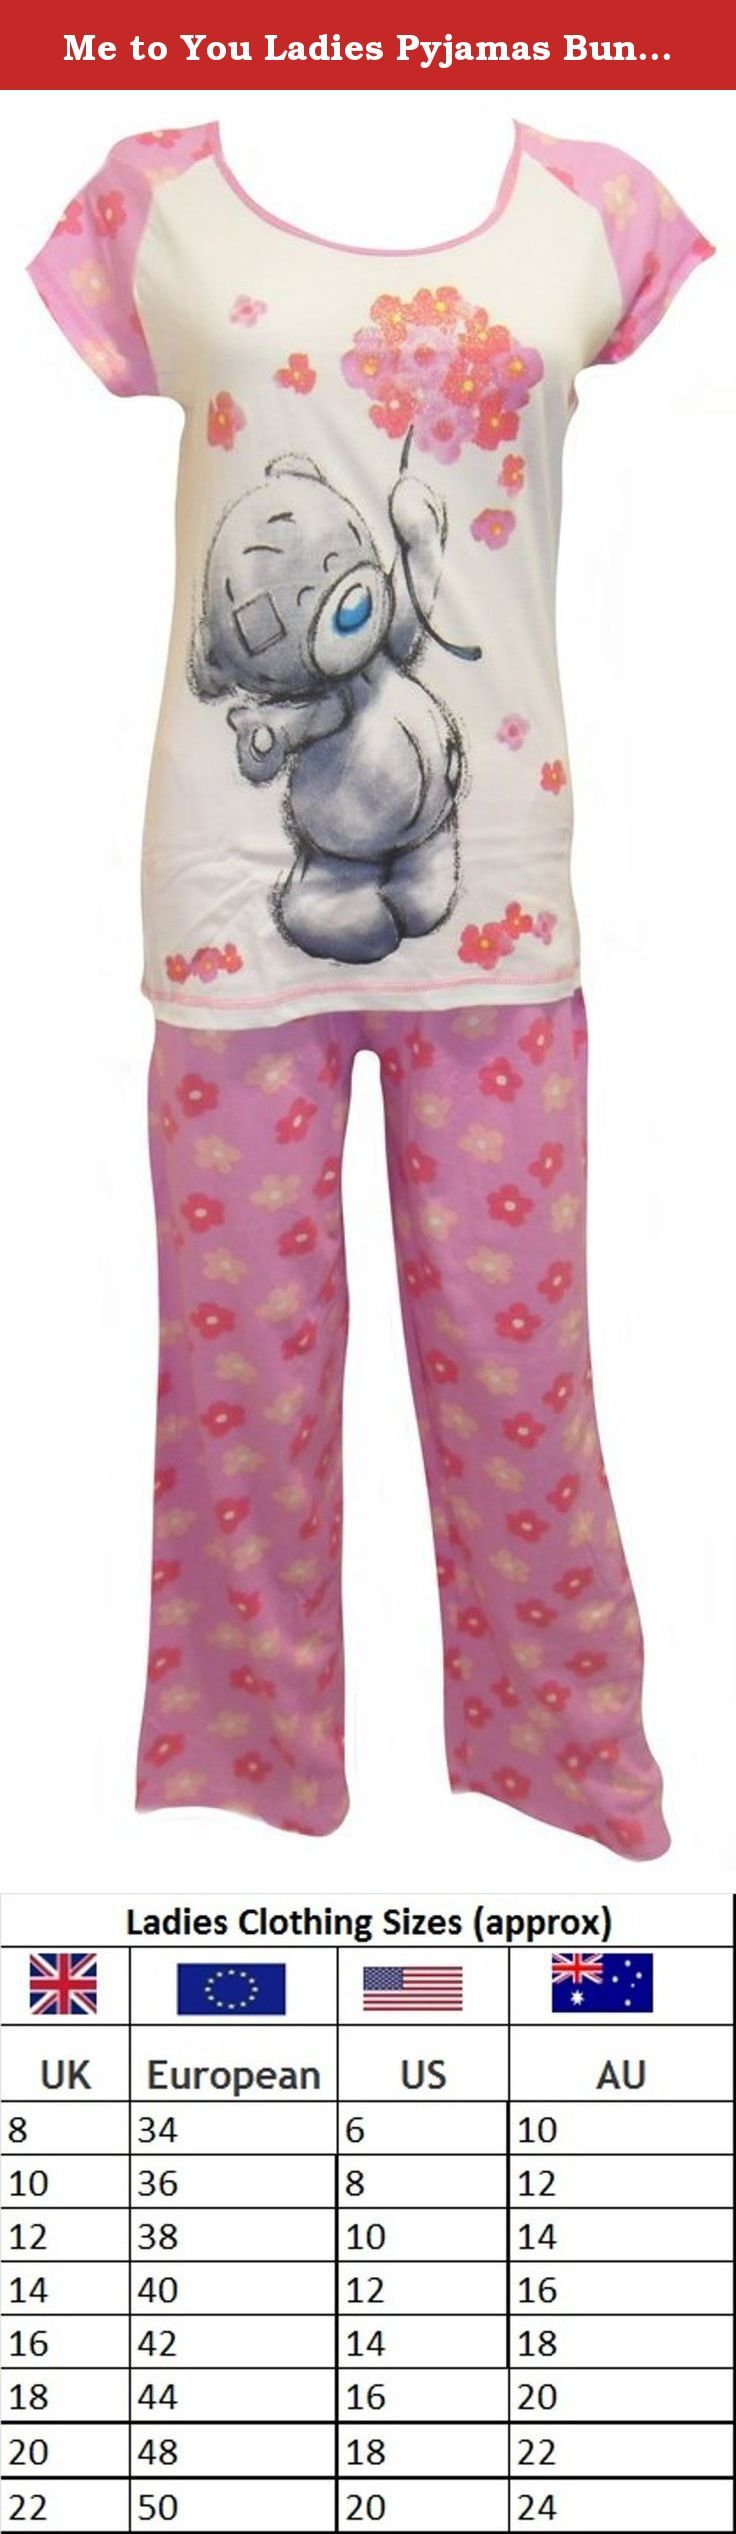 Me to You Ladies Pyjamas Bunches UK 12-14. Me to You Tatty Teddy Ladies Pyjamas. These short sleeved, long leg pants are made from 100% cotton. (Cotton like stretchable T-shirt). The pants are pink and Tatty Teddy holding abunch of flowers on the short sleeved white and pink top. These are available in sizes UK: 8-10, 12-15, 16-18, 20-22.